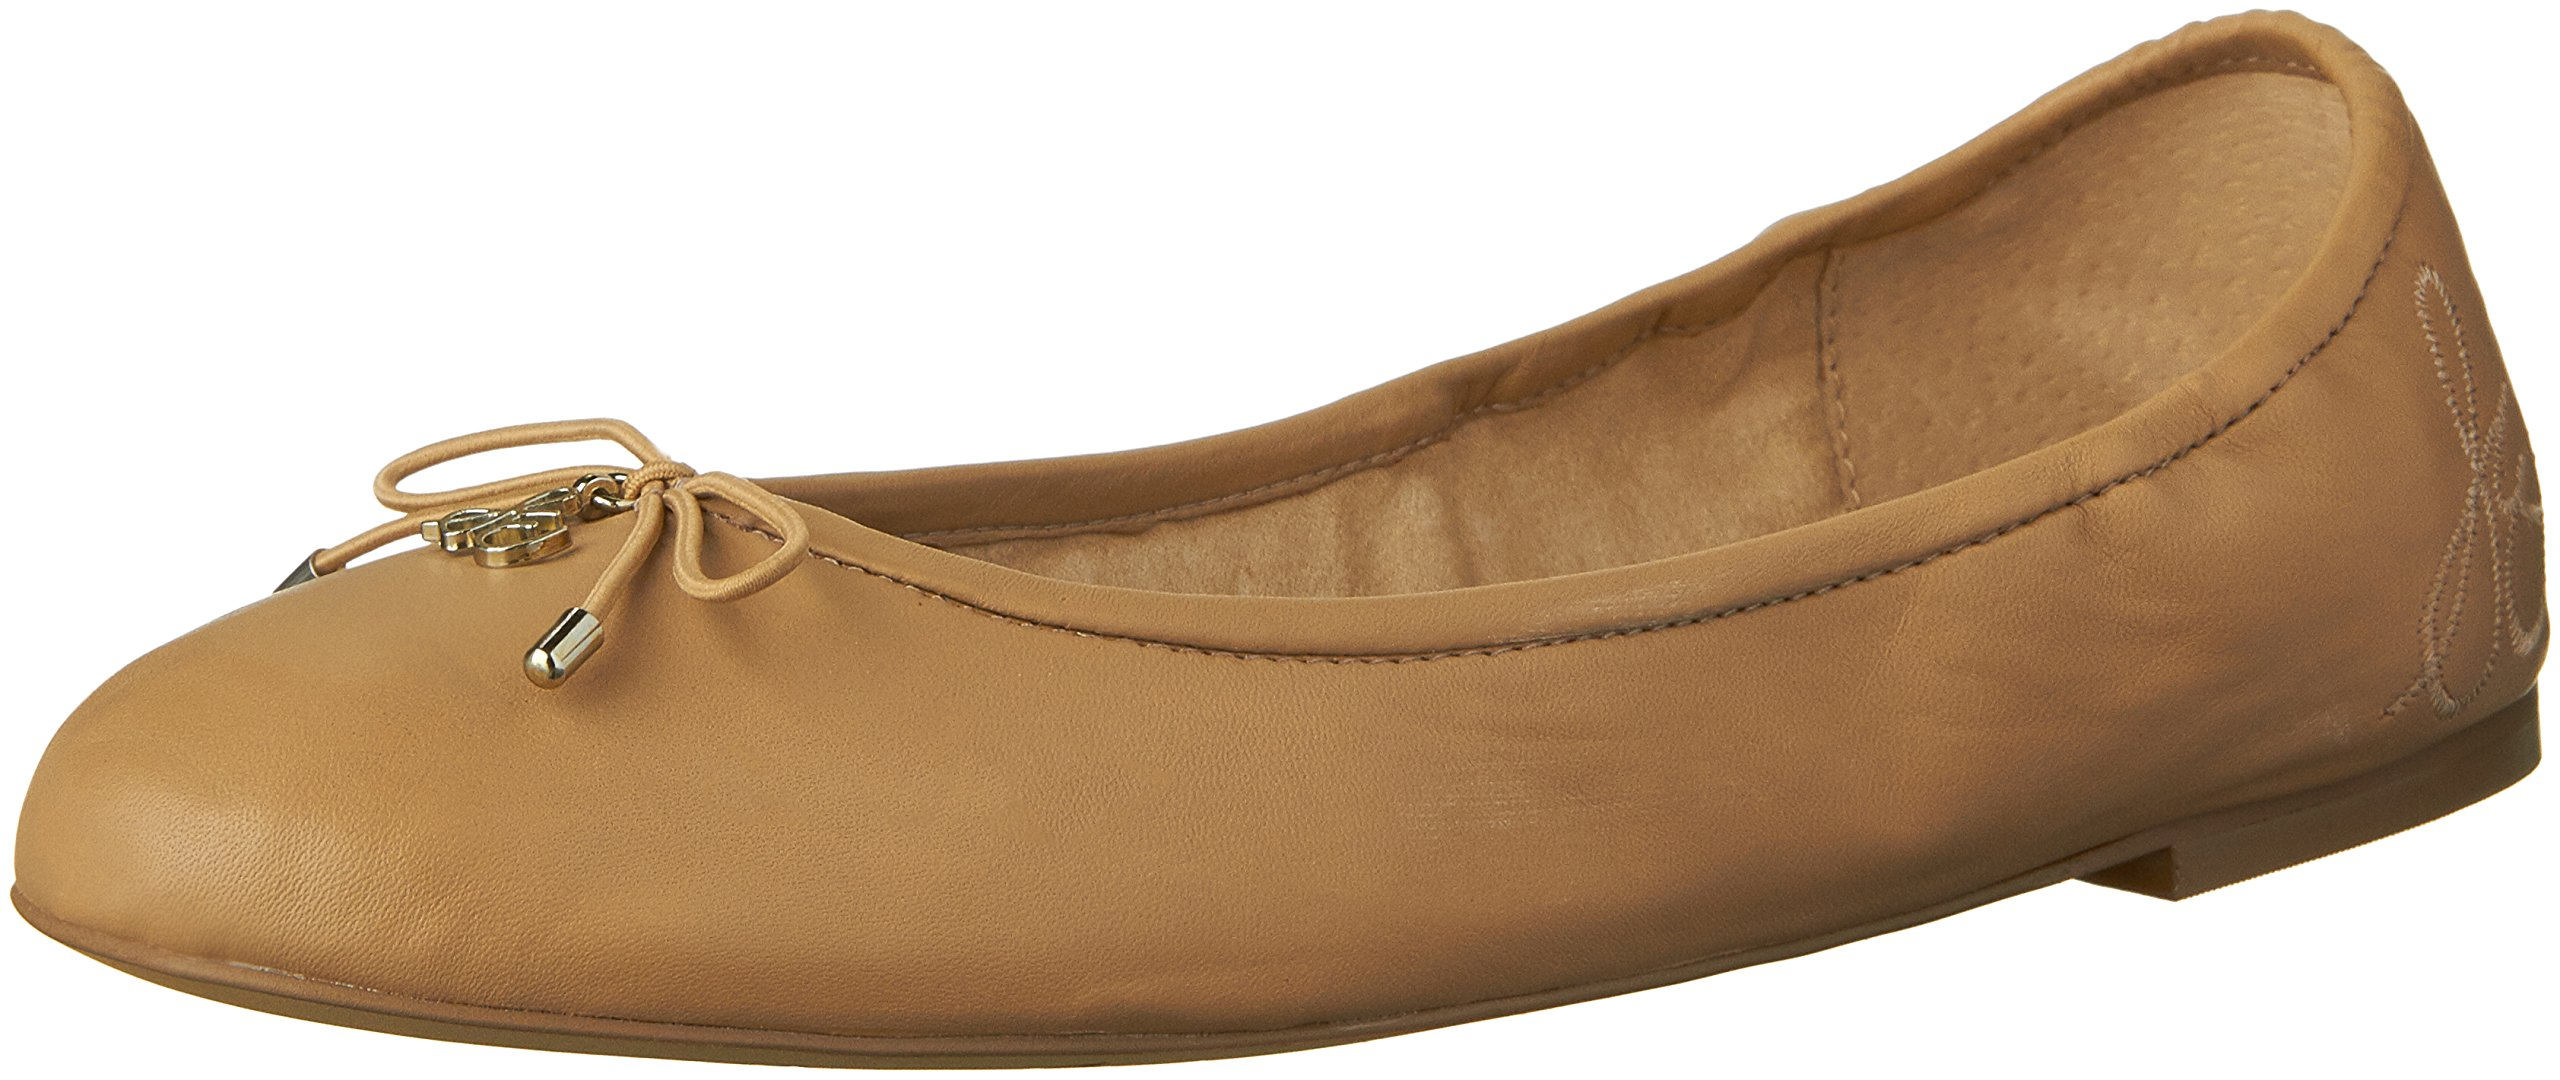 6ef09a6a13a895 Best Rated in Women s Flats   Helpful Customer Reviews - Amazon.com